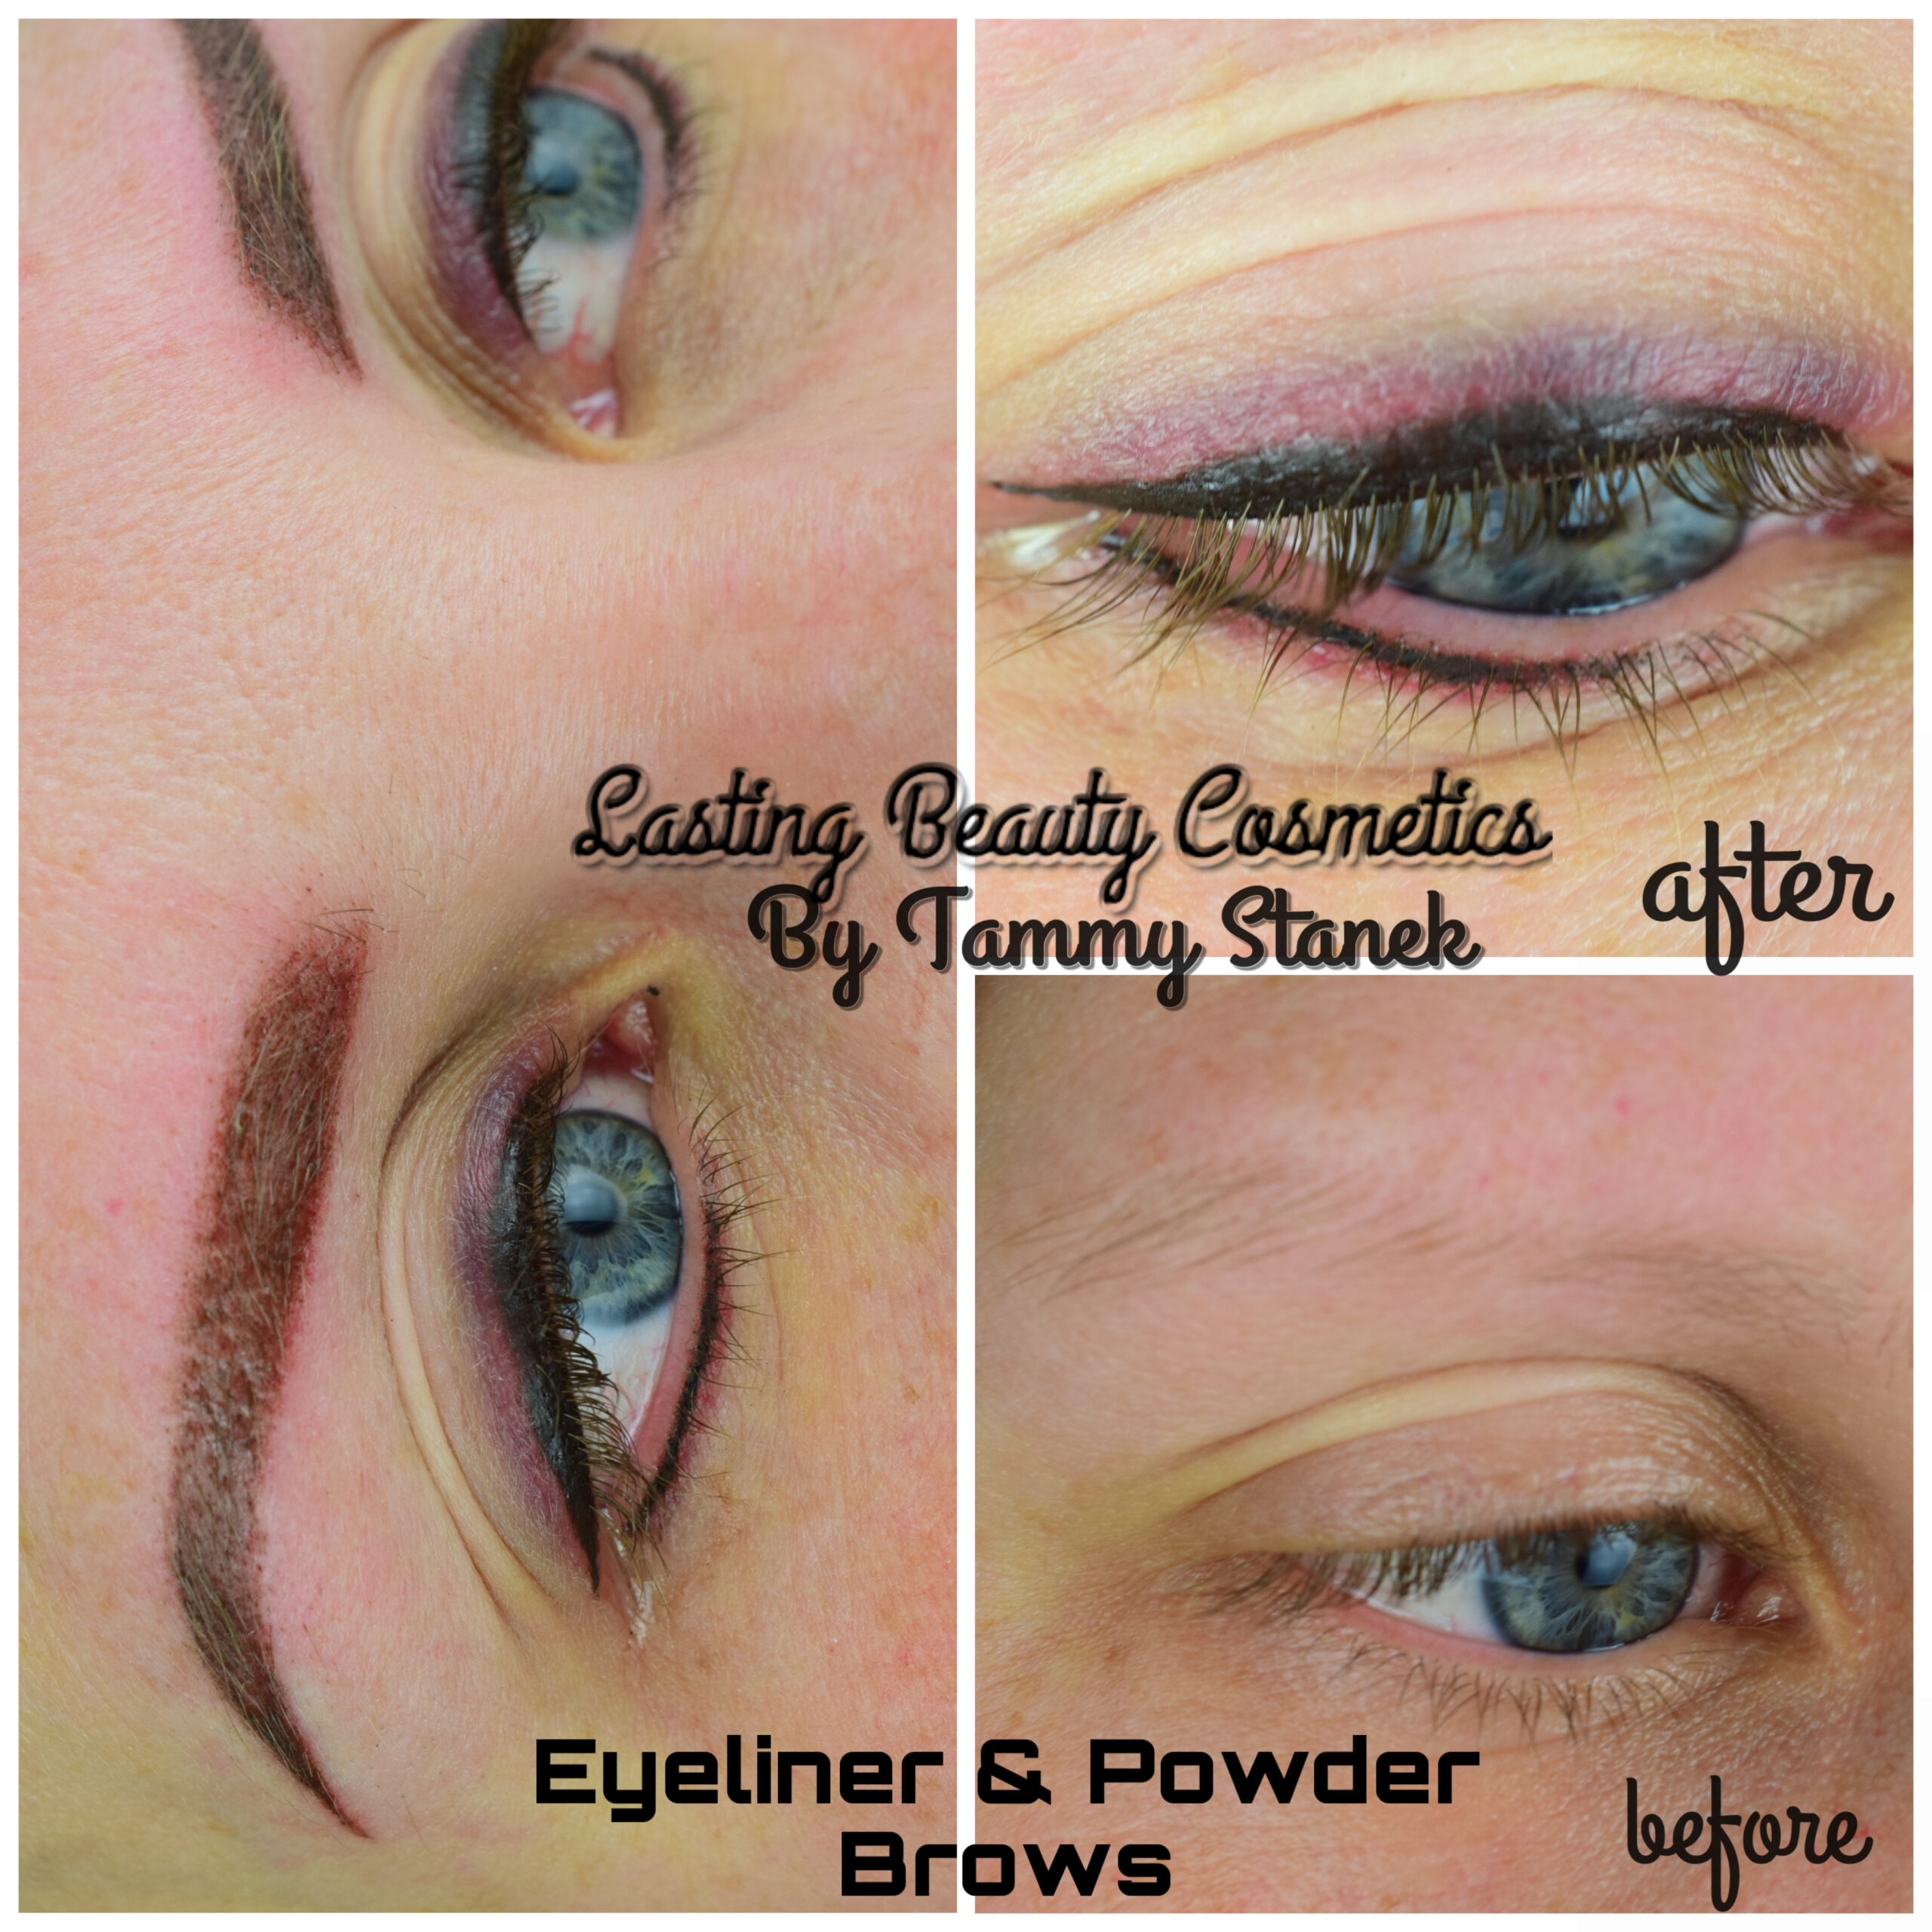 powdered brow and Eyeliner